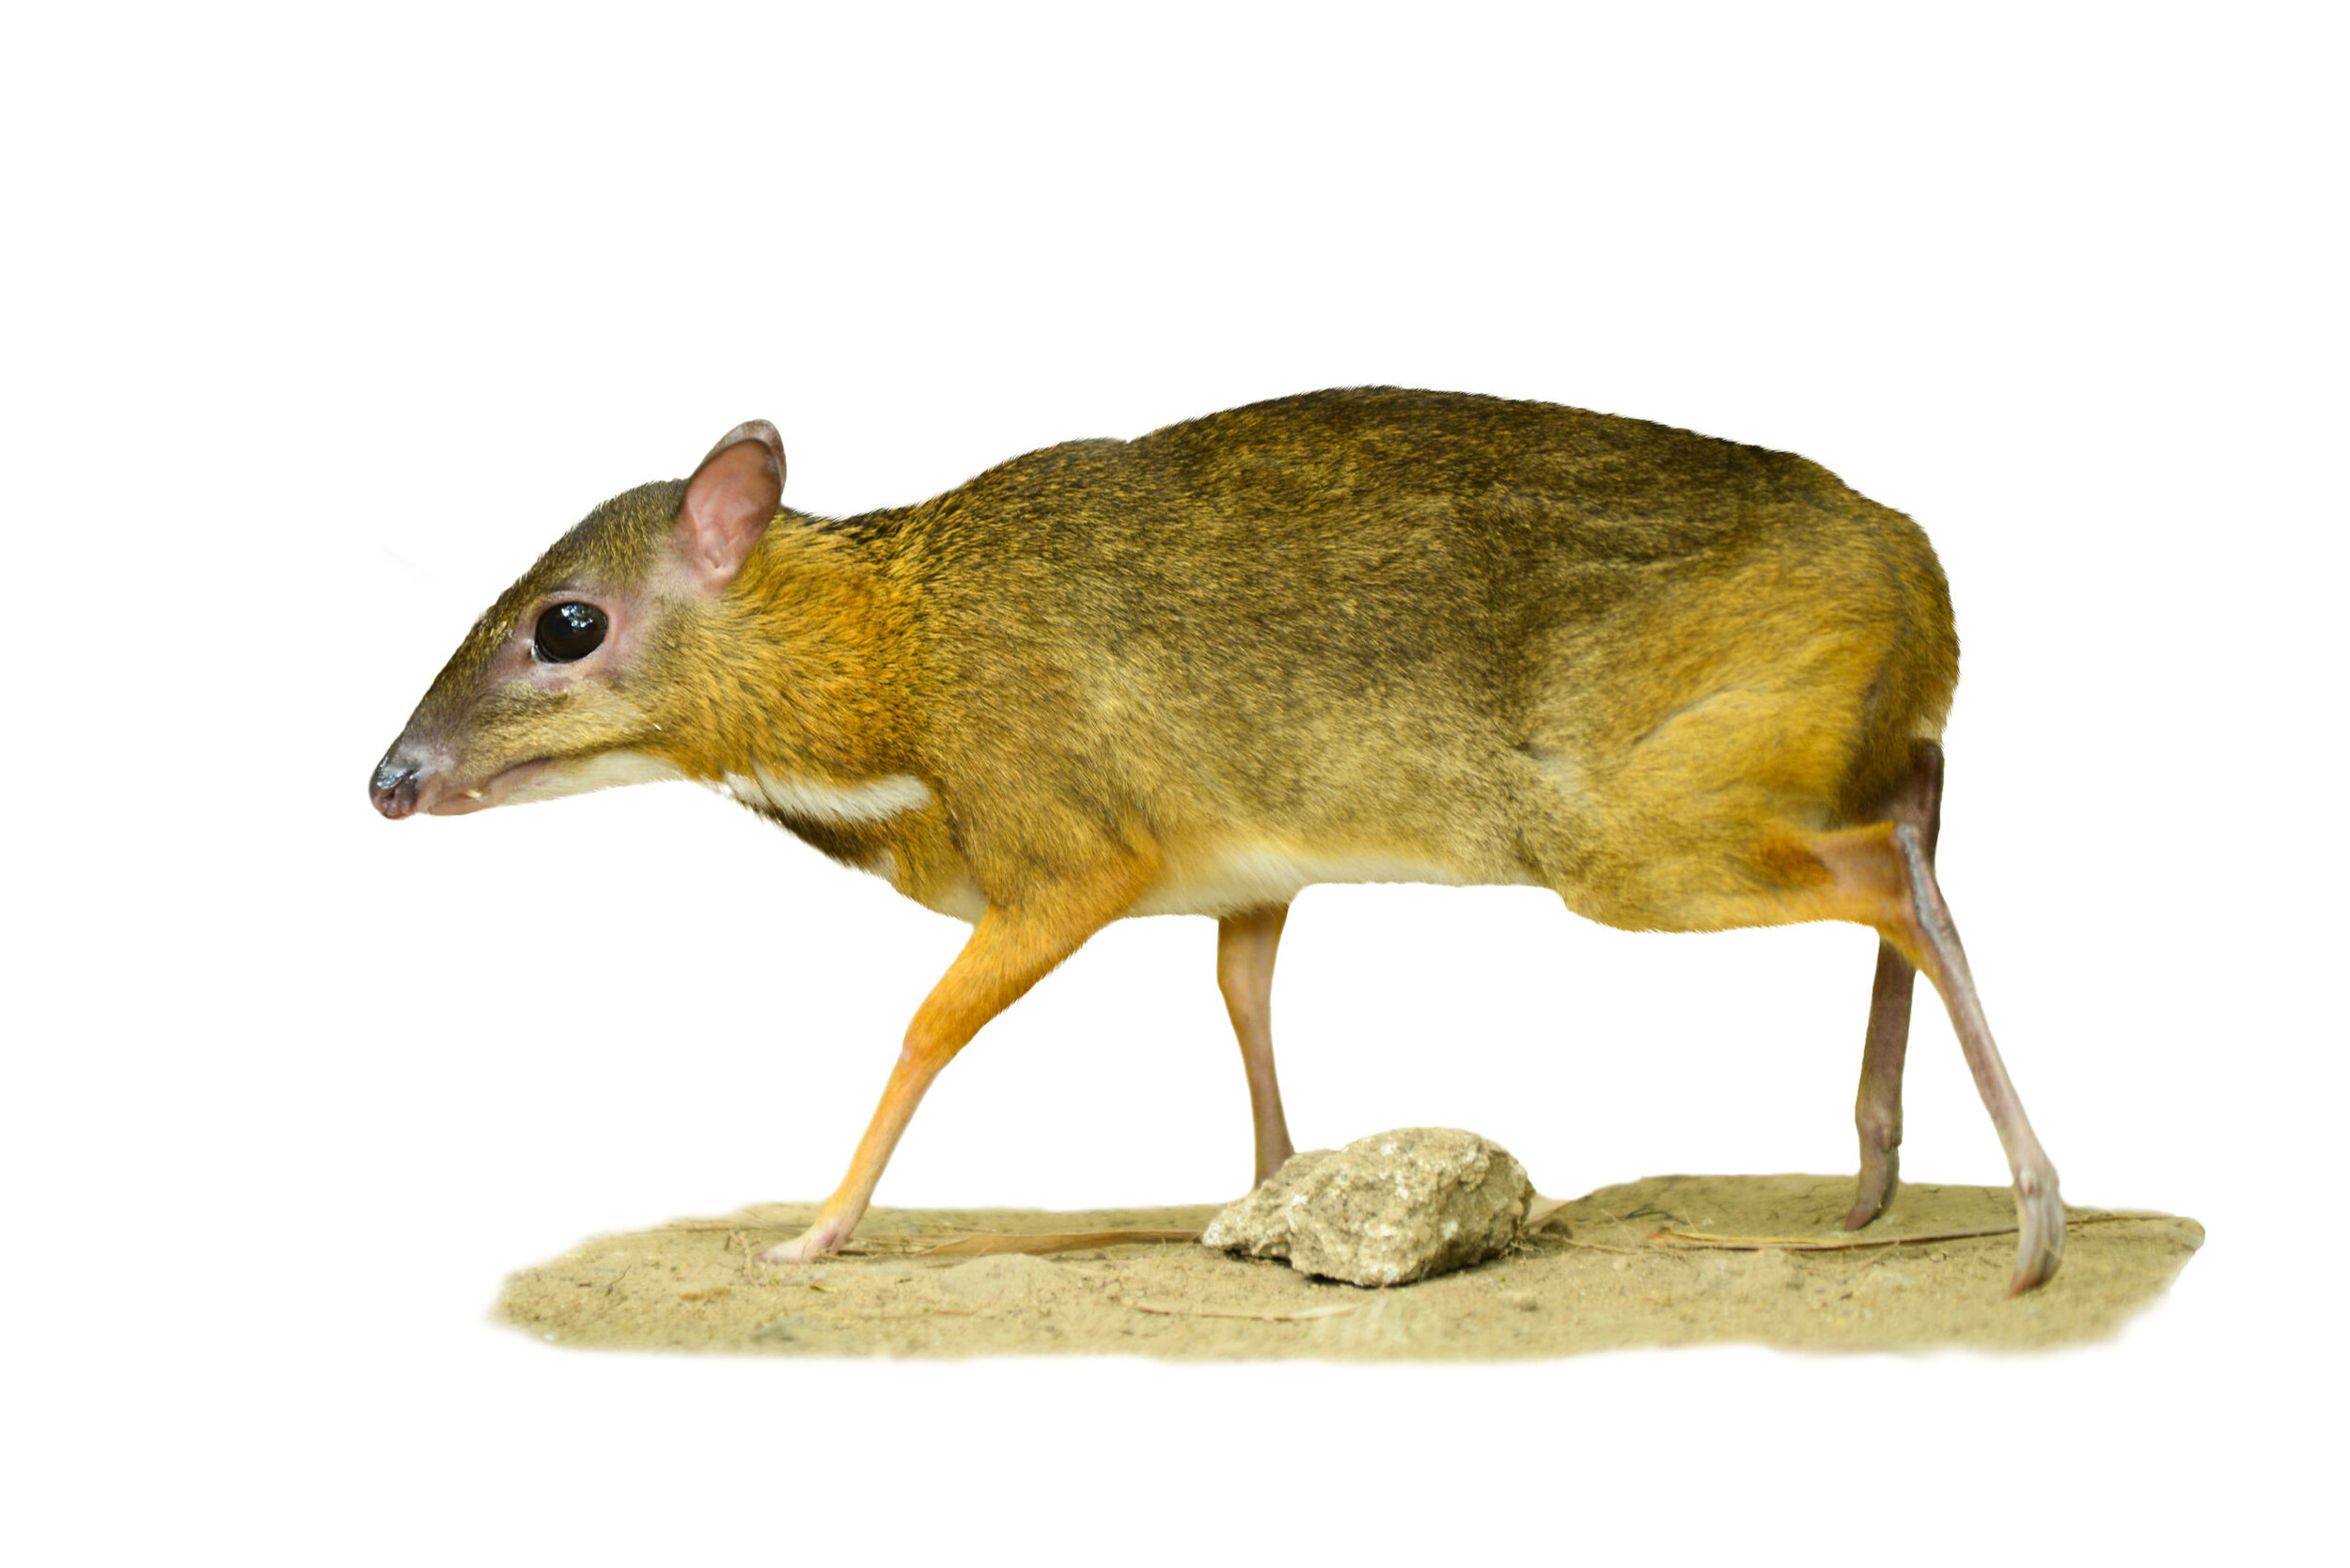 38: The chevrotain or lesser mouse deer looks like a tiny deer with fangs:  https://www.youtube.com/watch?v=uKLoaU0f3jU